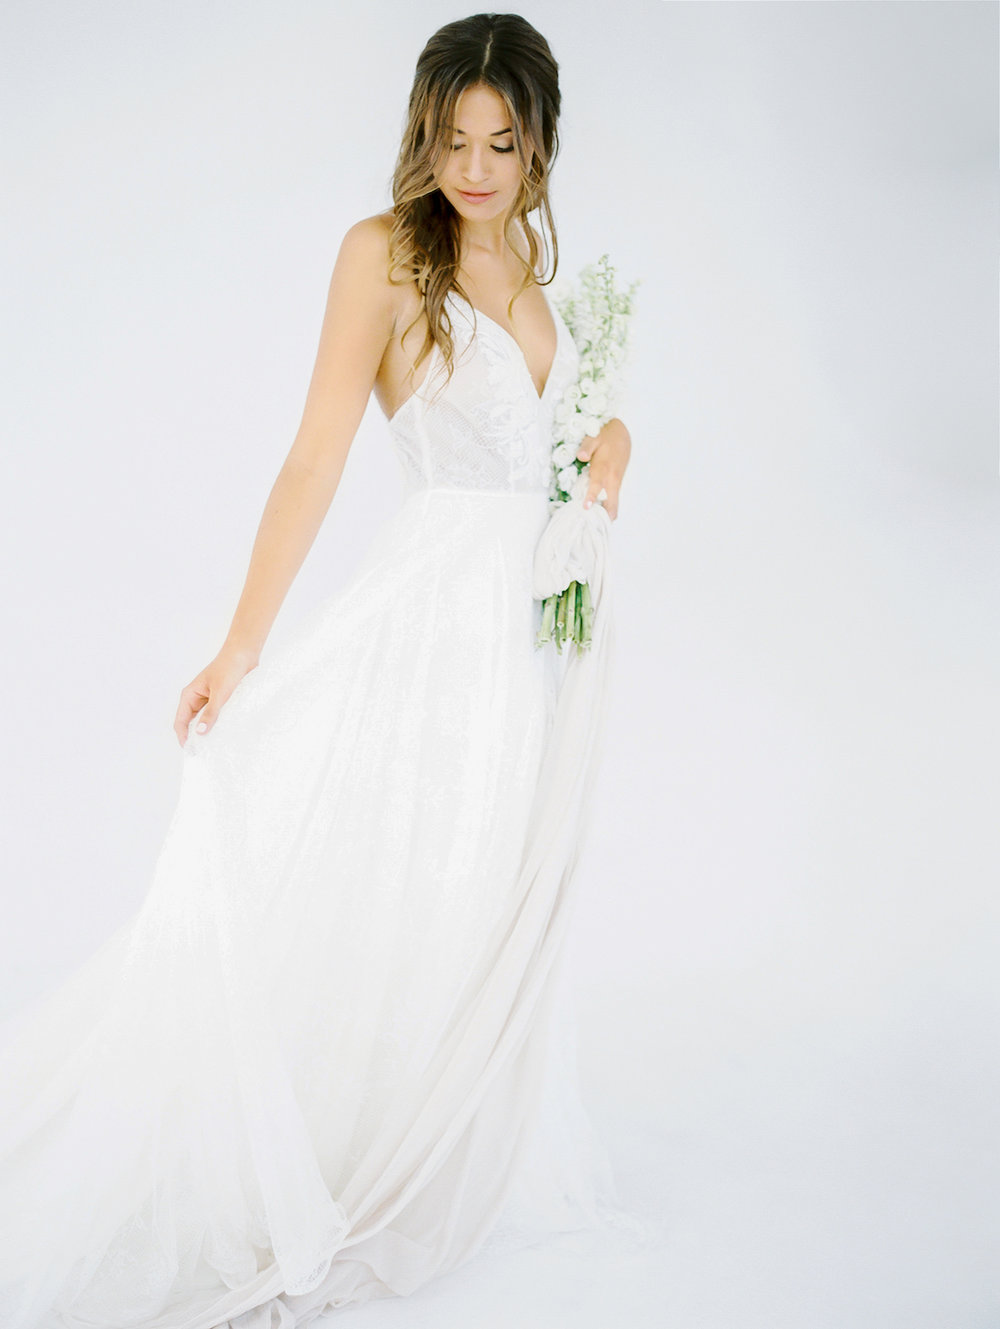 Natural, loose bridal hair | Studio 710 | Compass Floral | Wedding Florist in San Diego and Southern California | Dear Lovers Photography